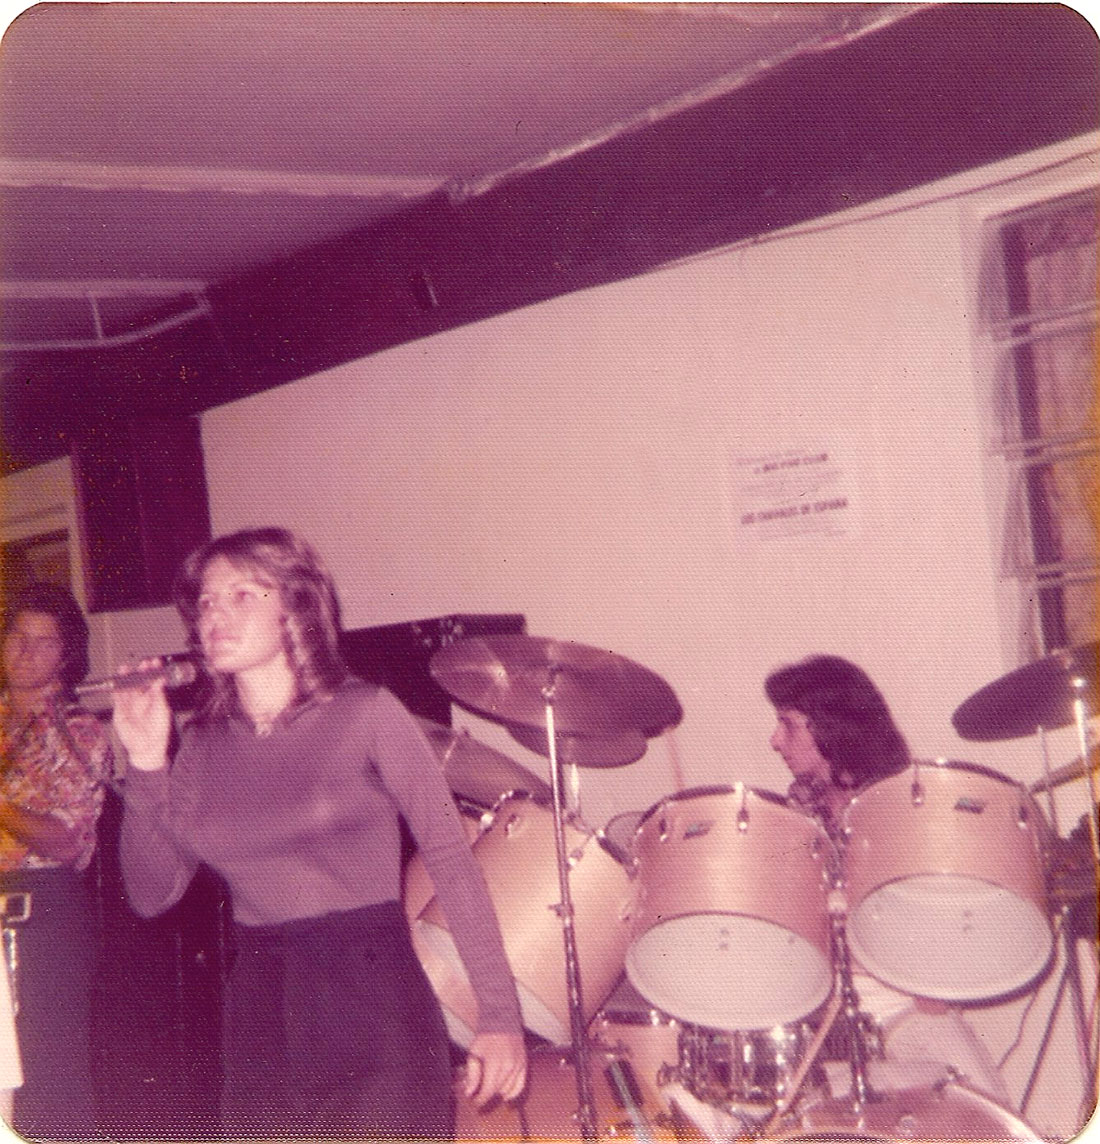 Lina Arguelles and Carlos Segura at The Big-5 Club on March 30, 1975